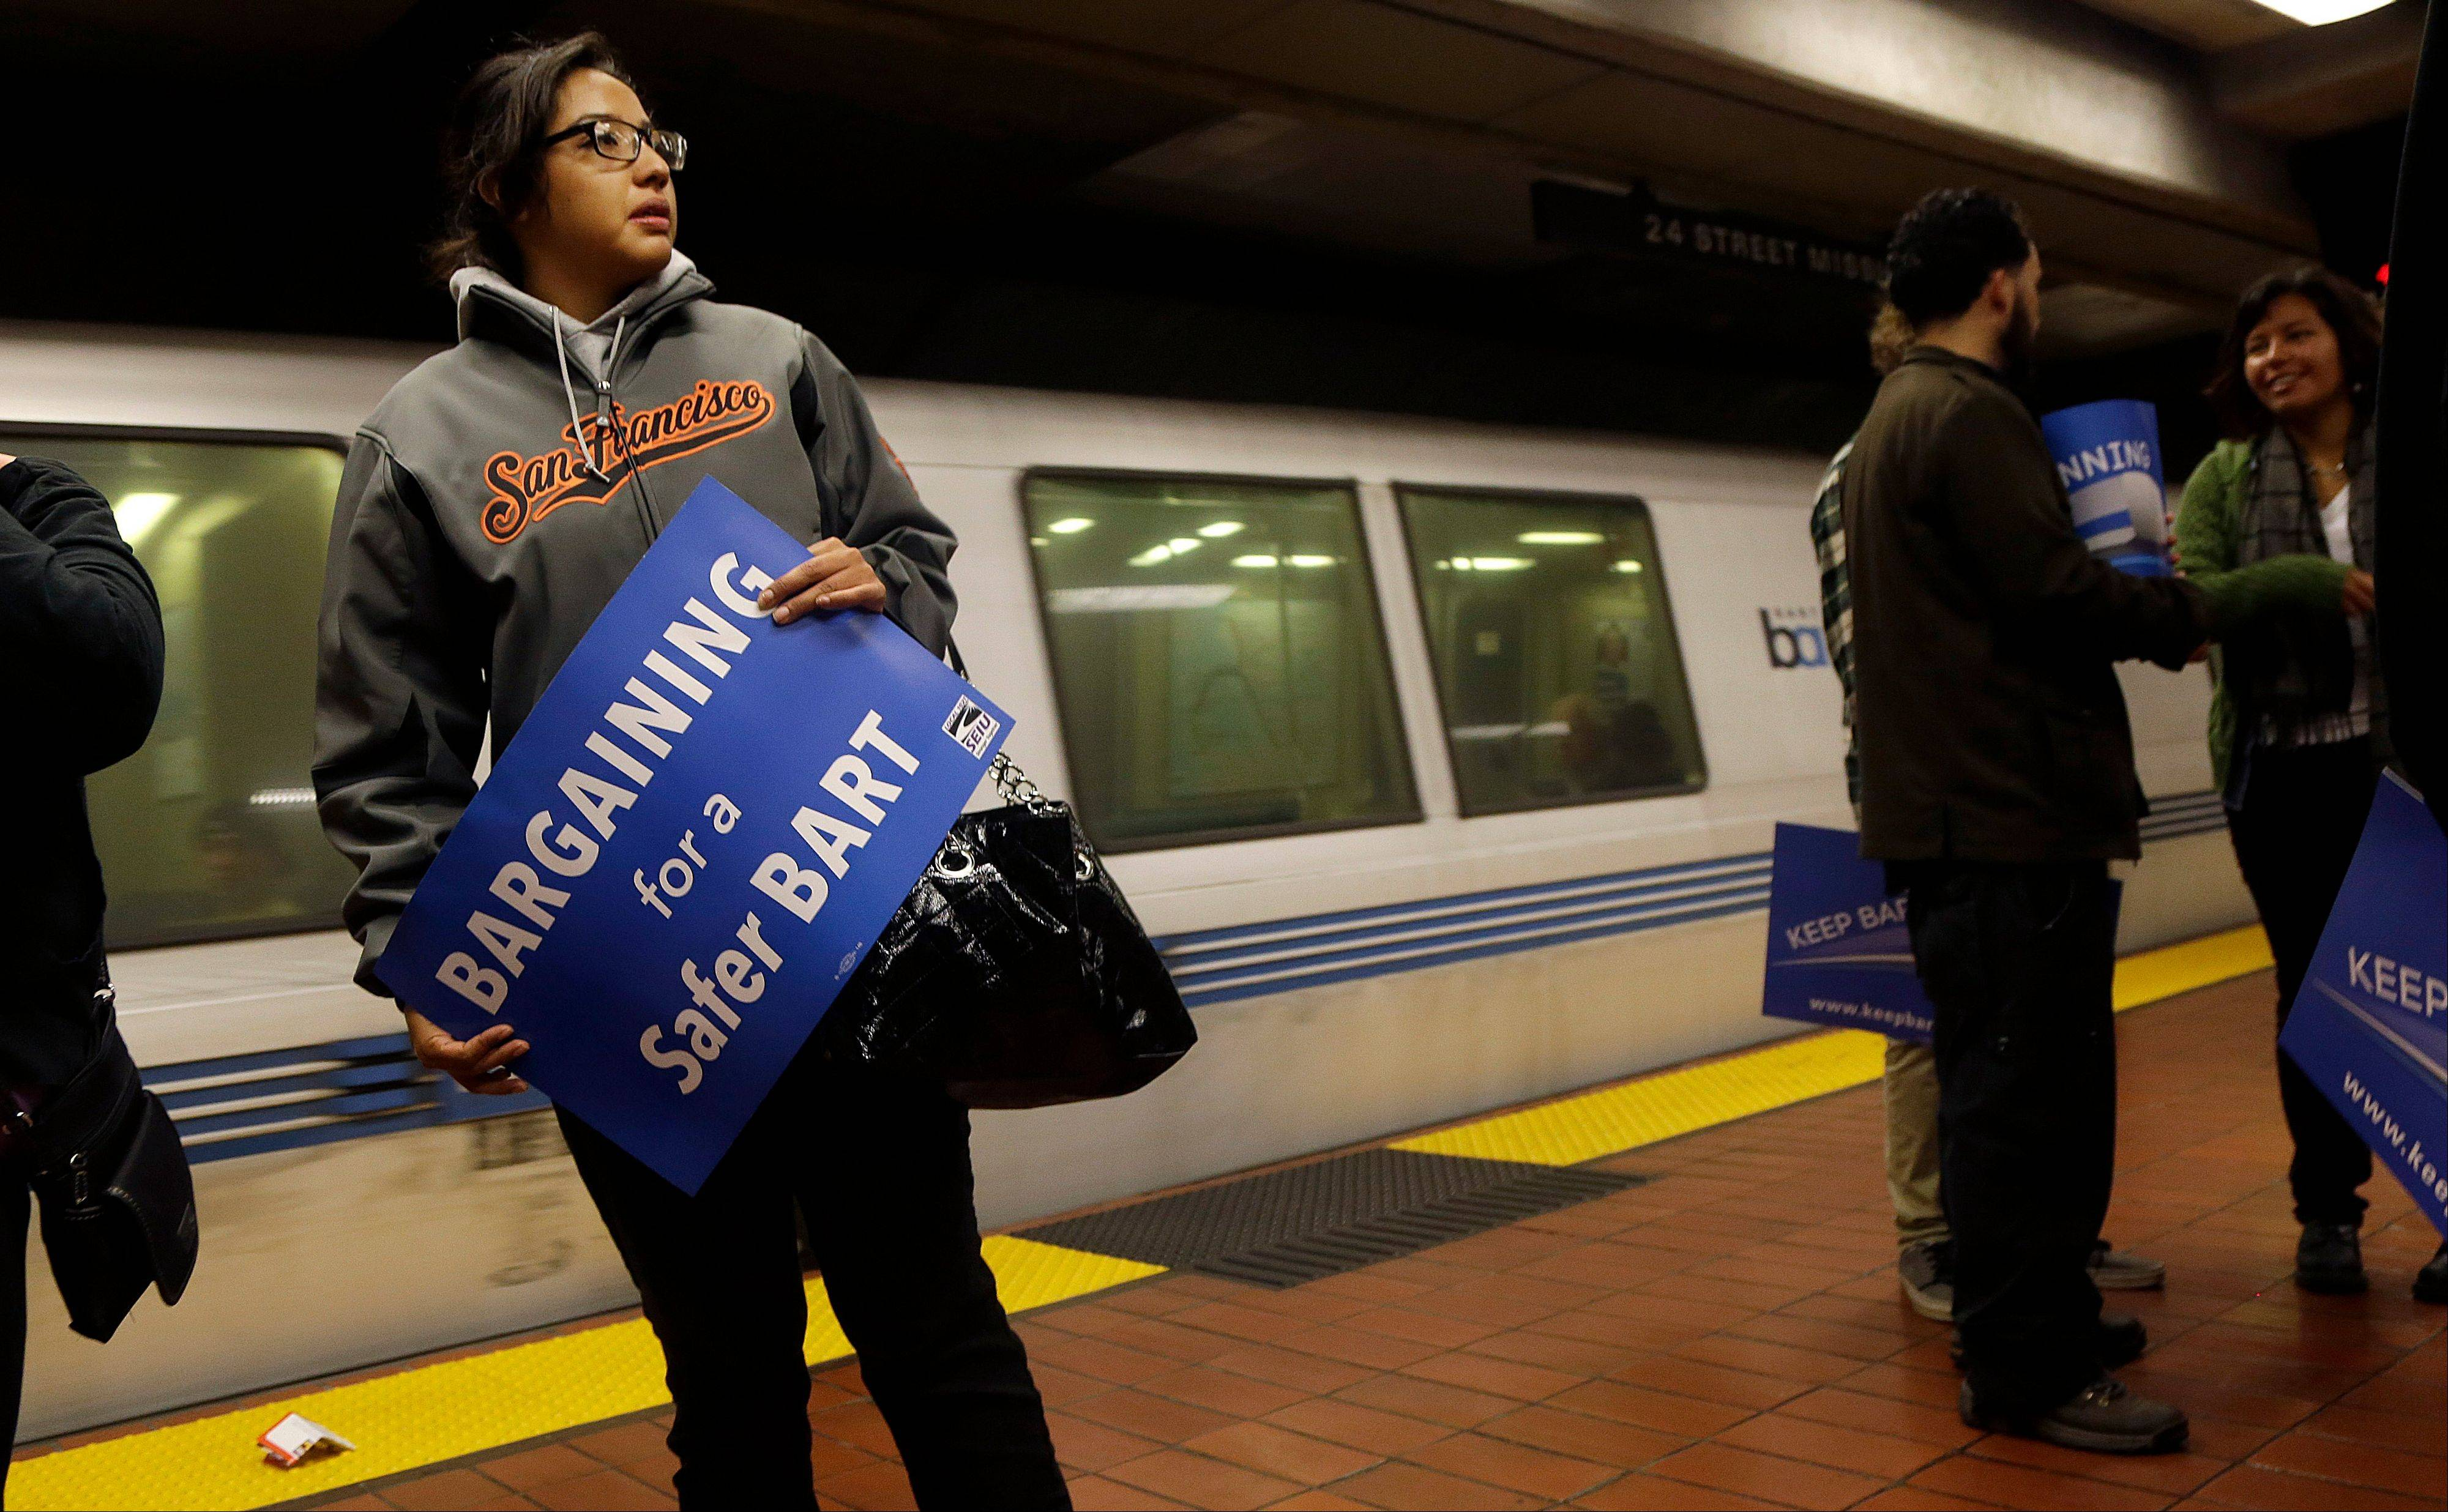 Early Monday, two of San Francisco Bay Area Rapid Transit's largest unions went on strike after weekend talks with management failed to produce a new contract.